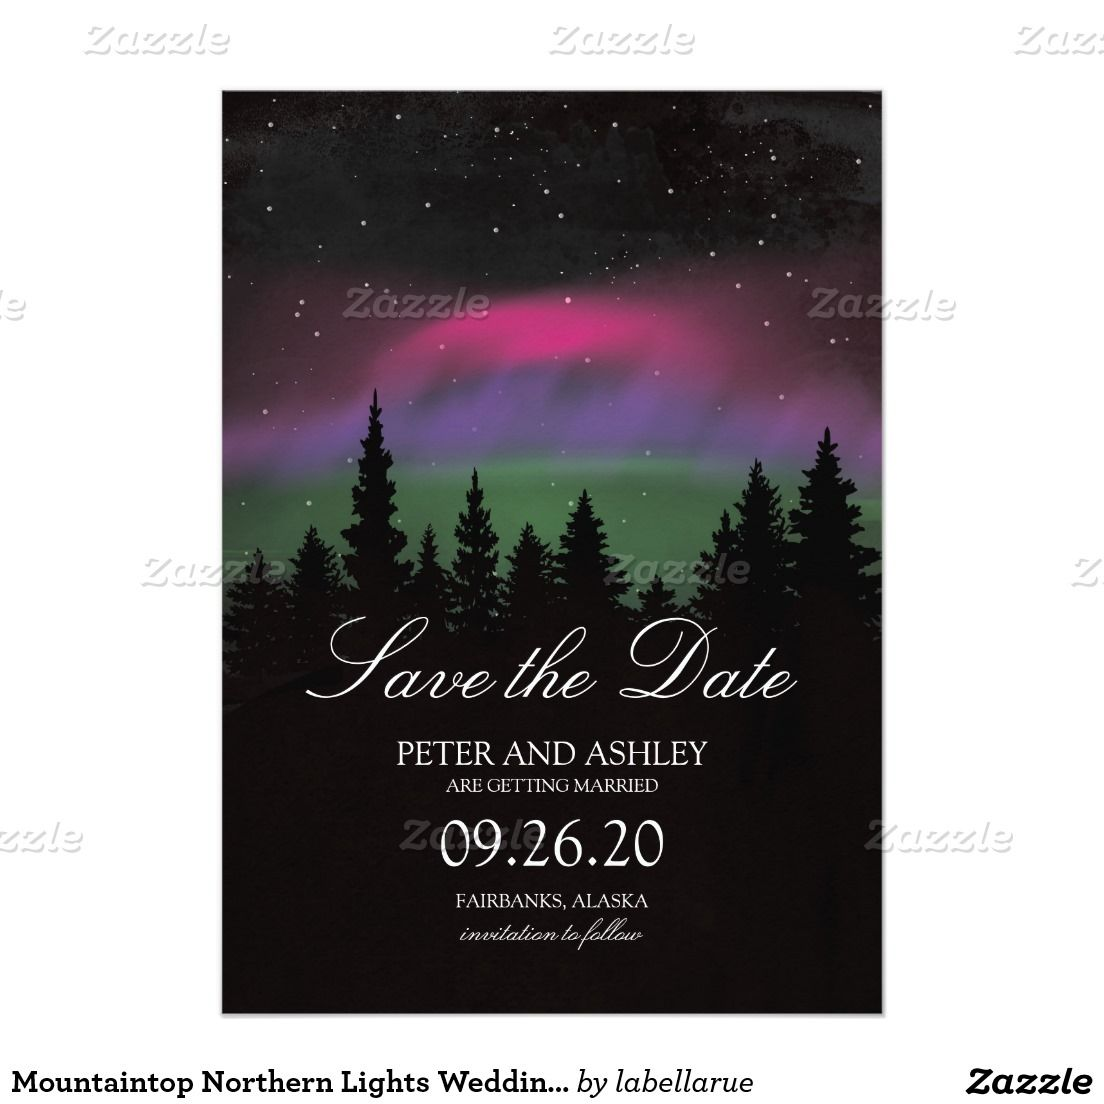 Mountaintop Northern Lights Wedding Save the Date Zazzle